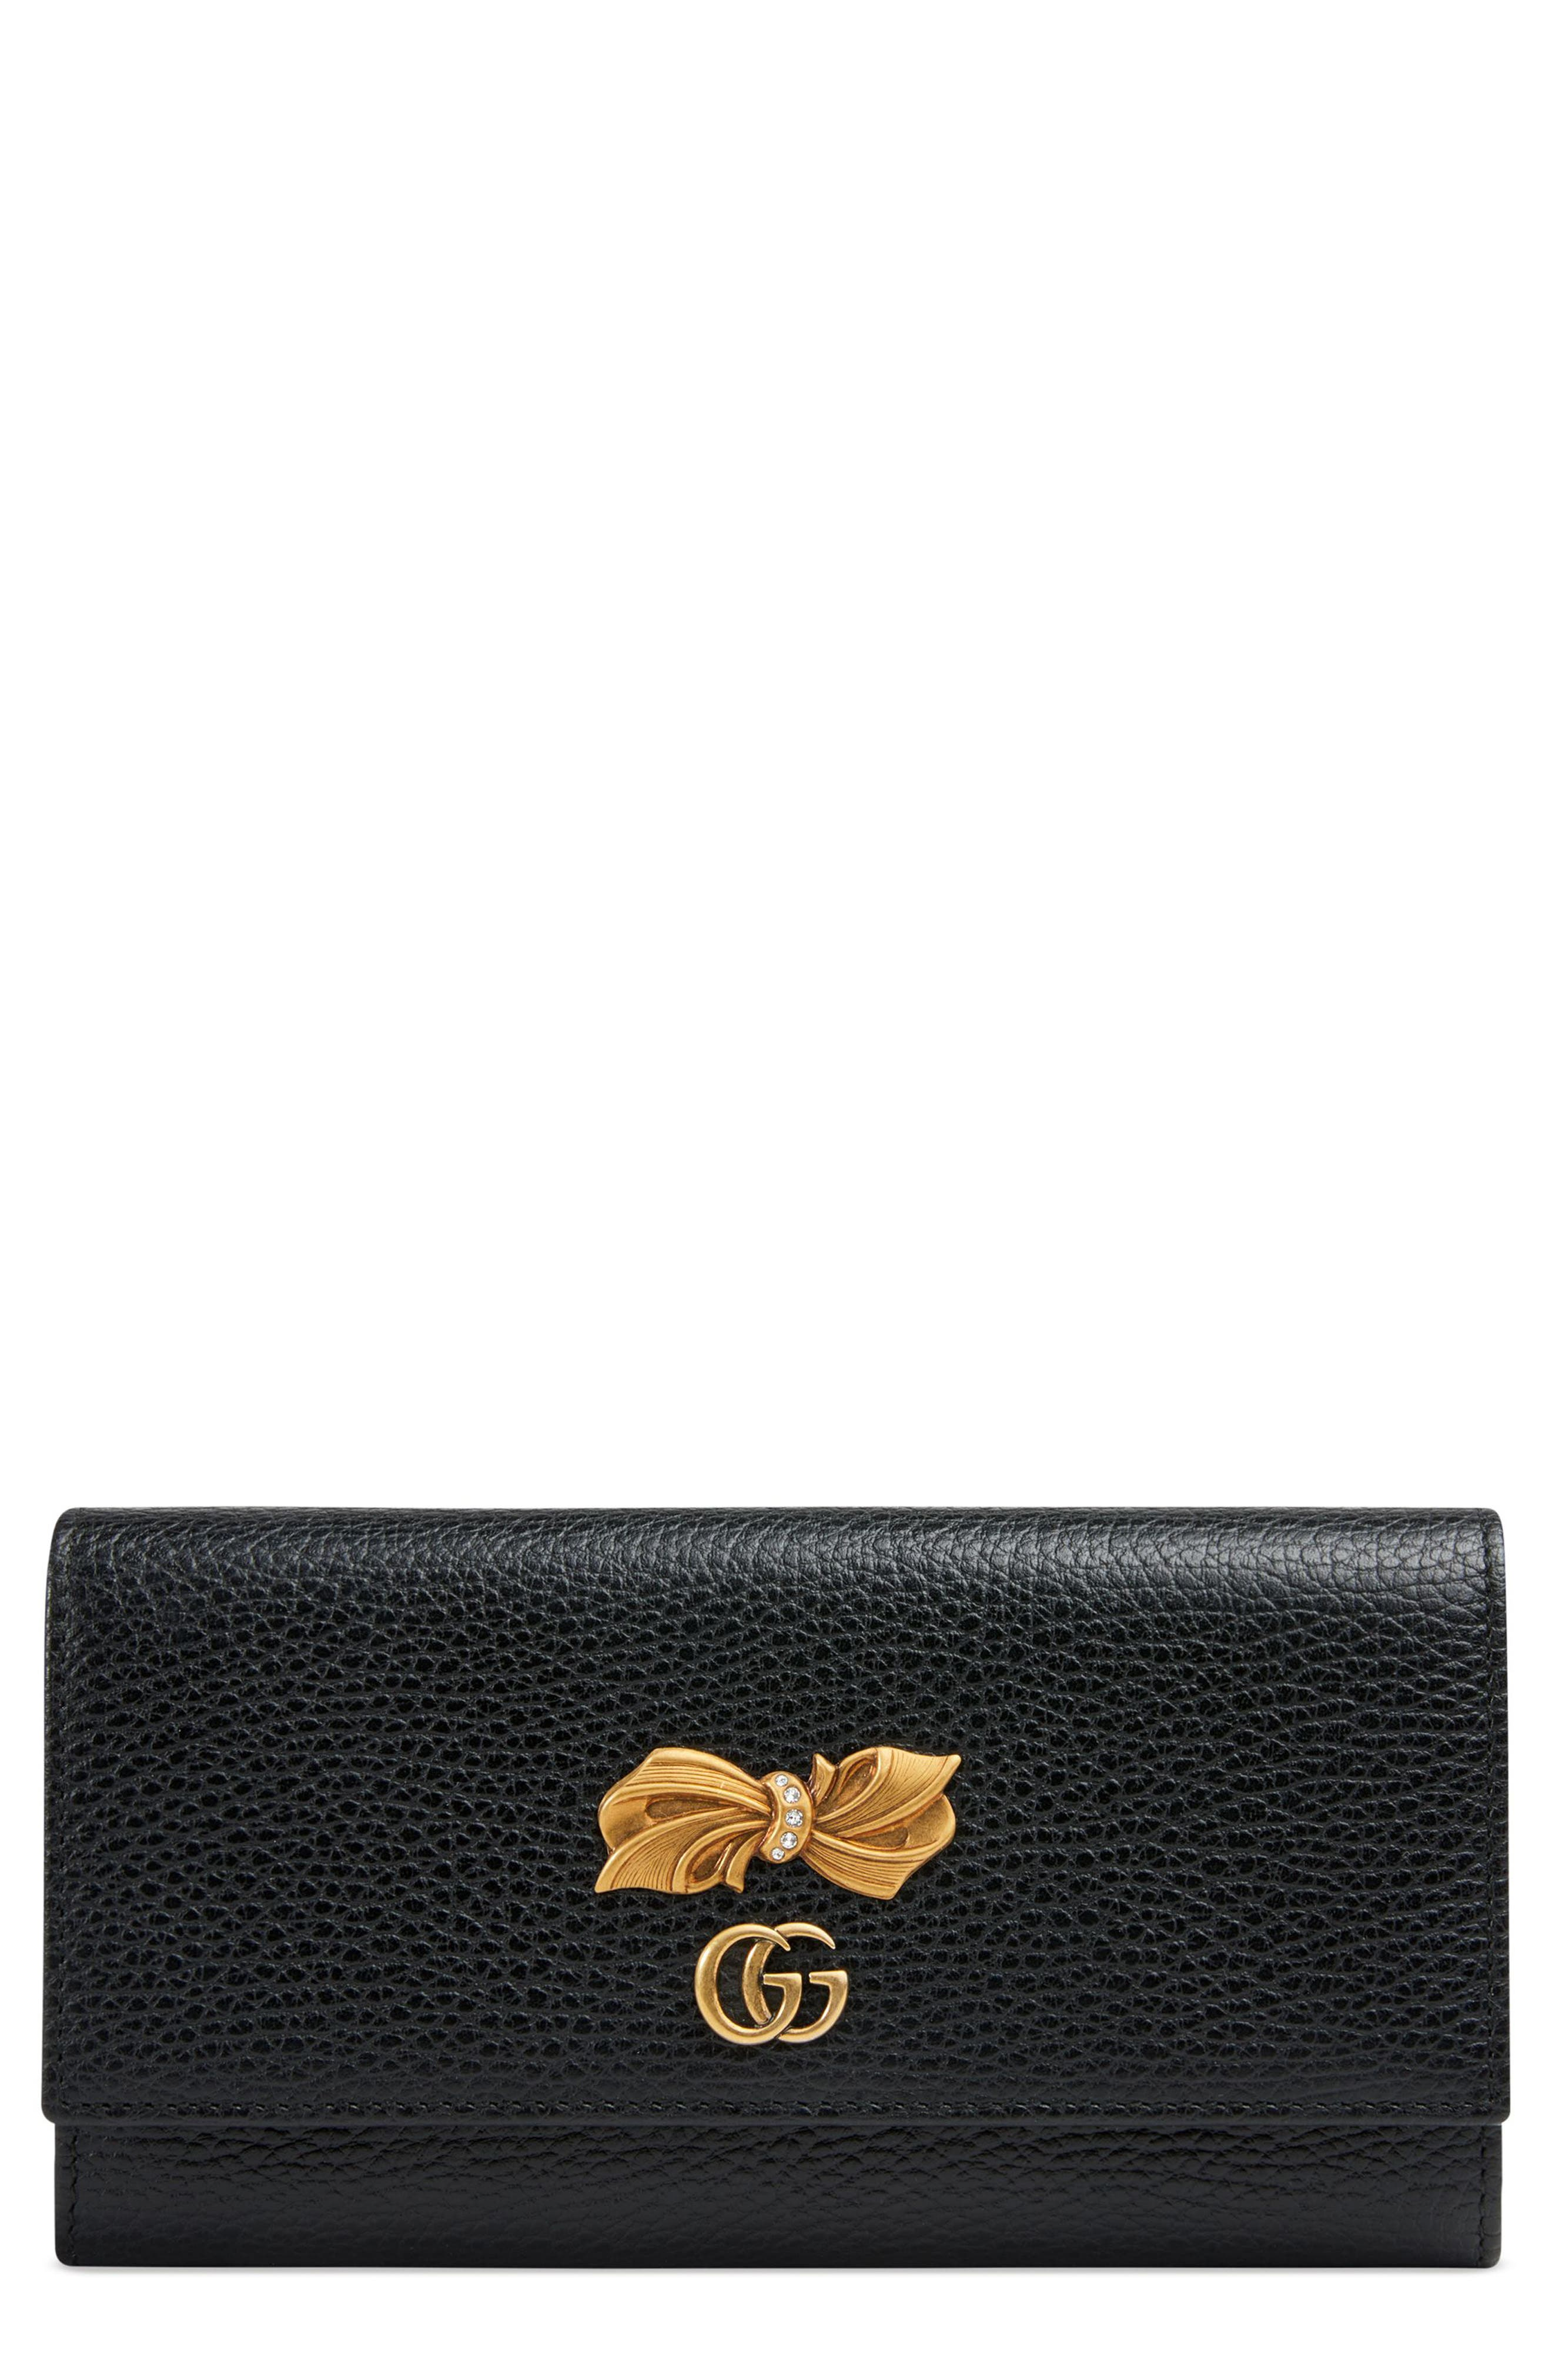 Fiocchino Bow Leather Continental Wallet,                             Main thumbnail 1, color,                             001